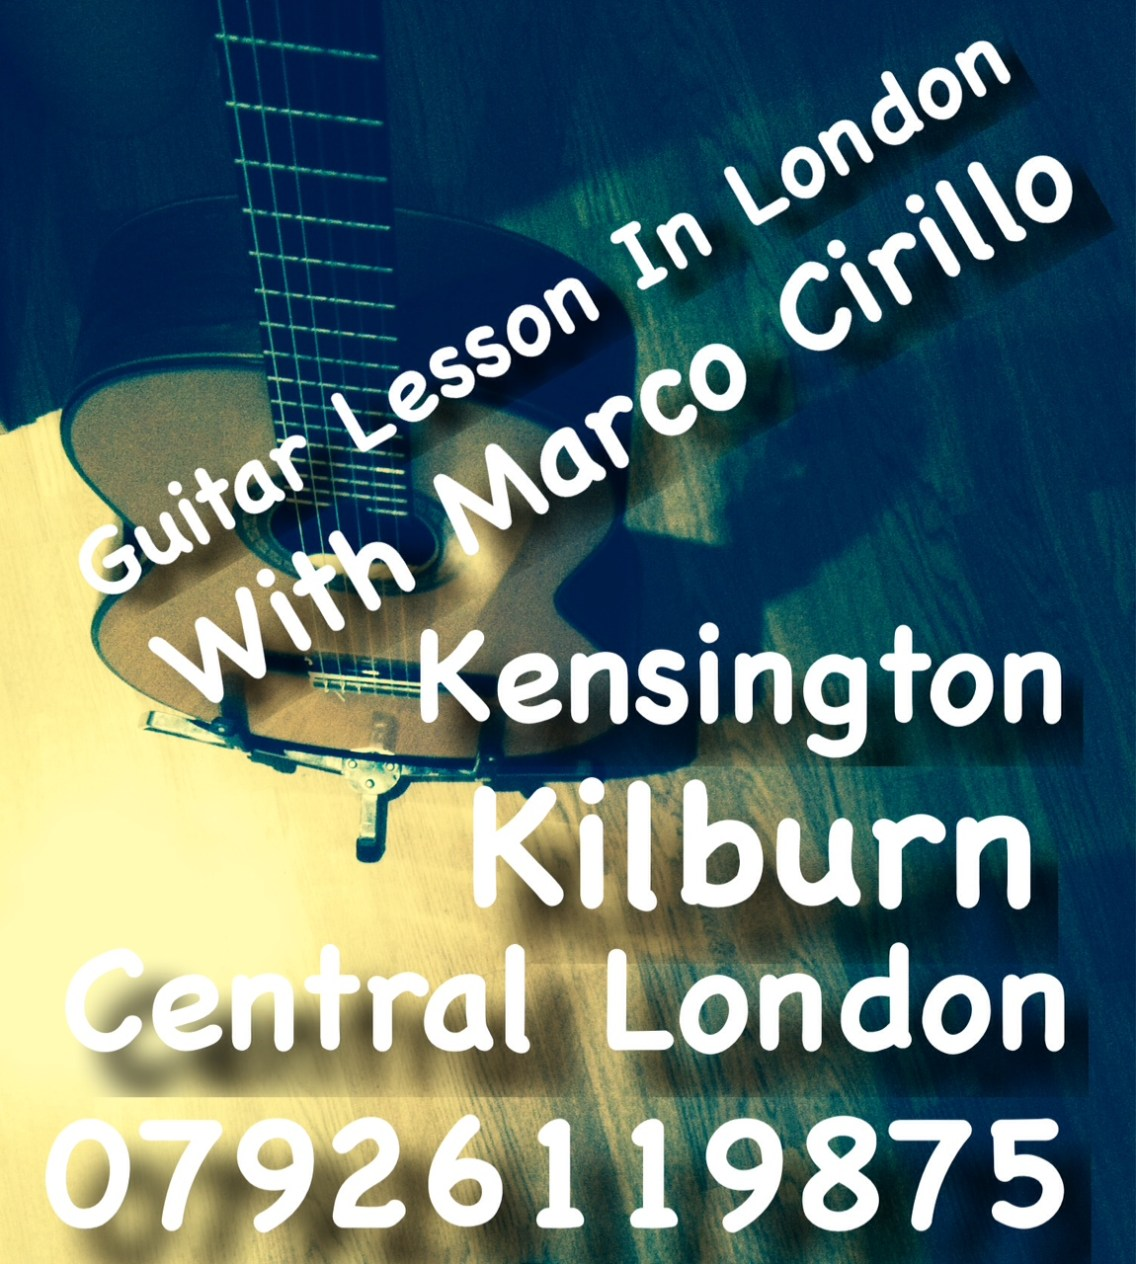 Guitar Lesson in London - Kilburn - Central London and Kensington with Marco Cirillo Pro Guitar Teacher Based in London. Learn Electric, Acoustic and Classical Guitar Lesson. For Beginners and Advanced Guitar Players.